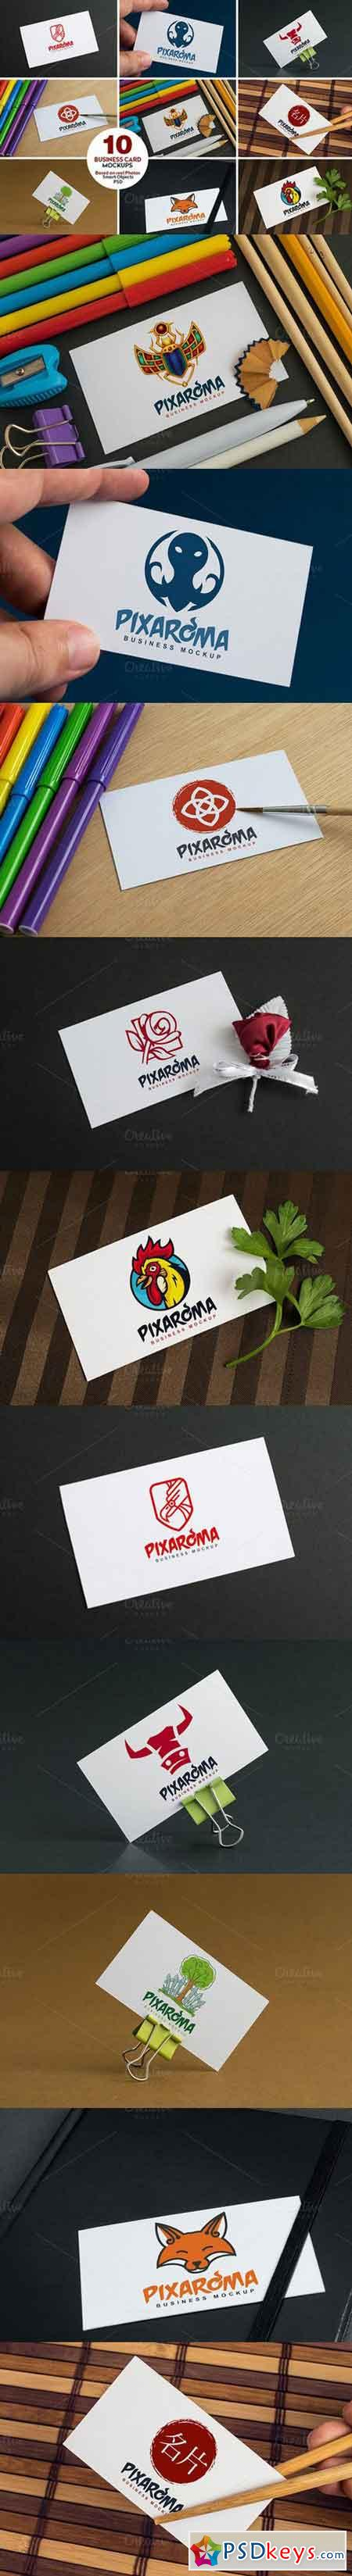 10 Business Card Mock-ups Vol.1 716967